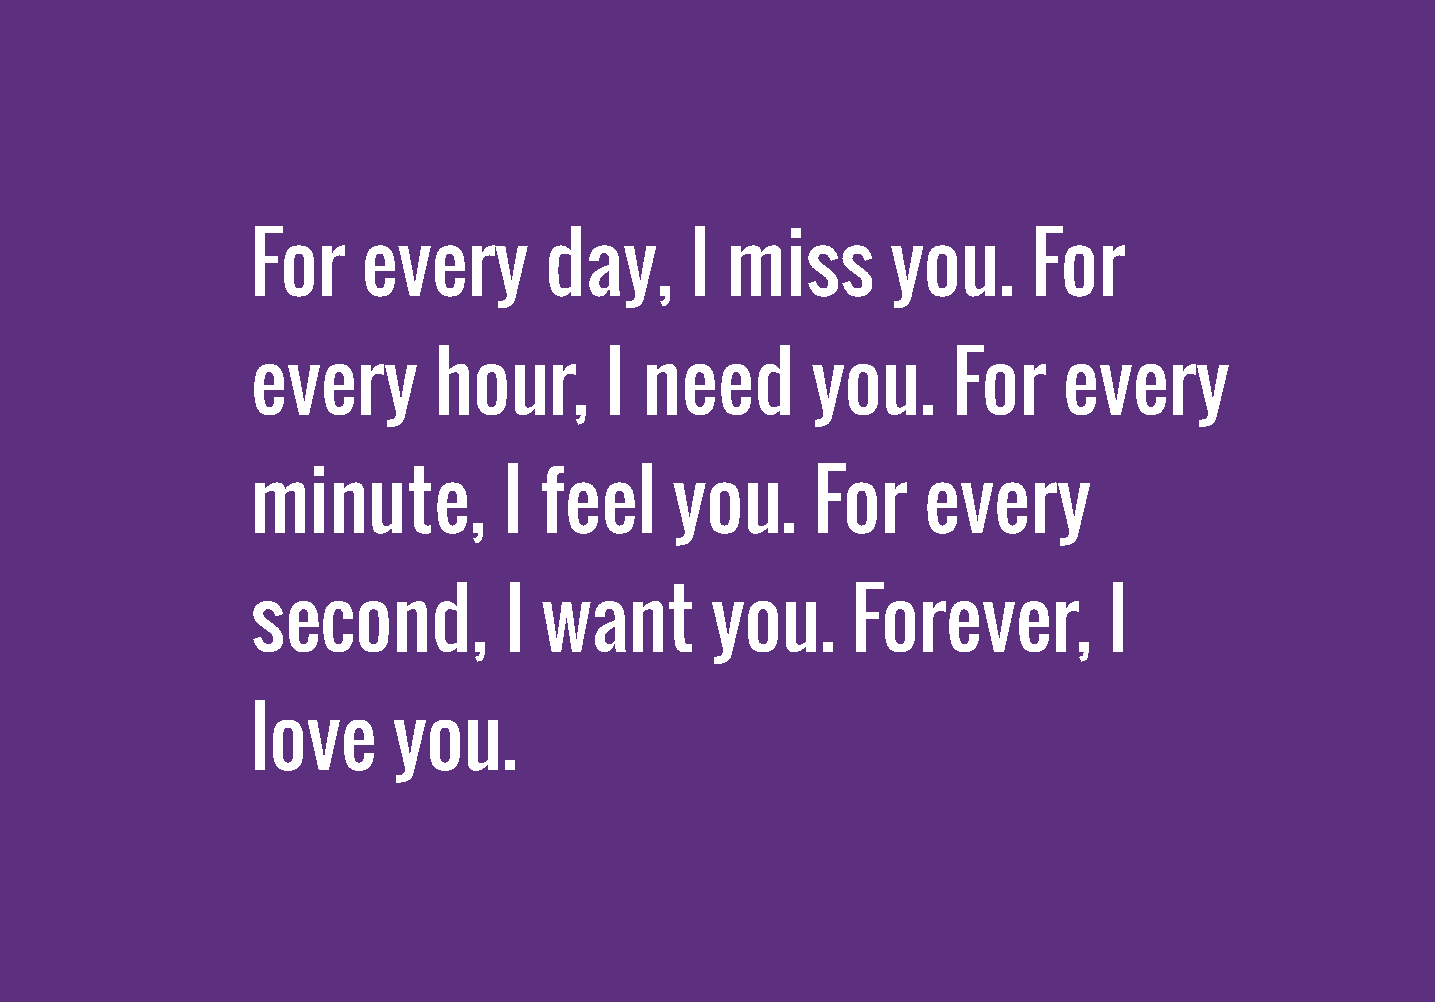 Quotes To Express My Love For Her : 11+ Awesome Love Quote For Him To Express Your Feelings -